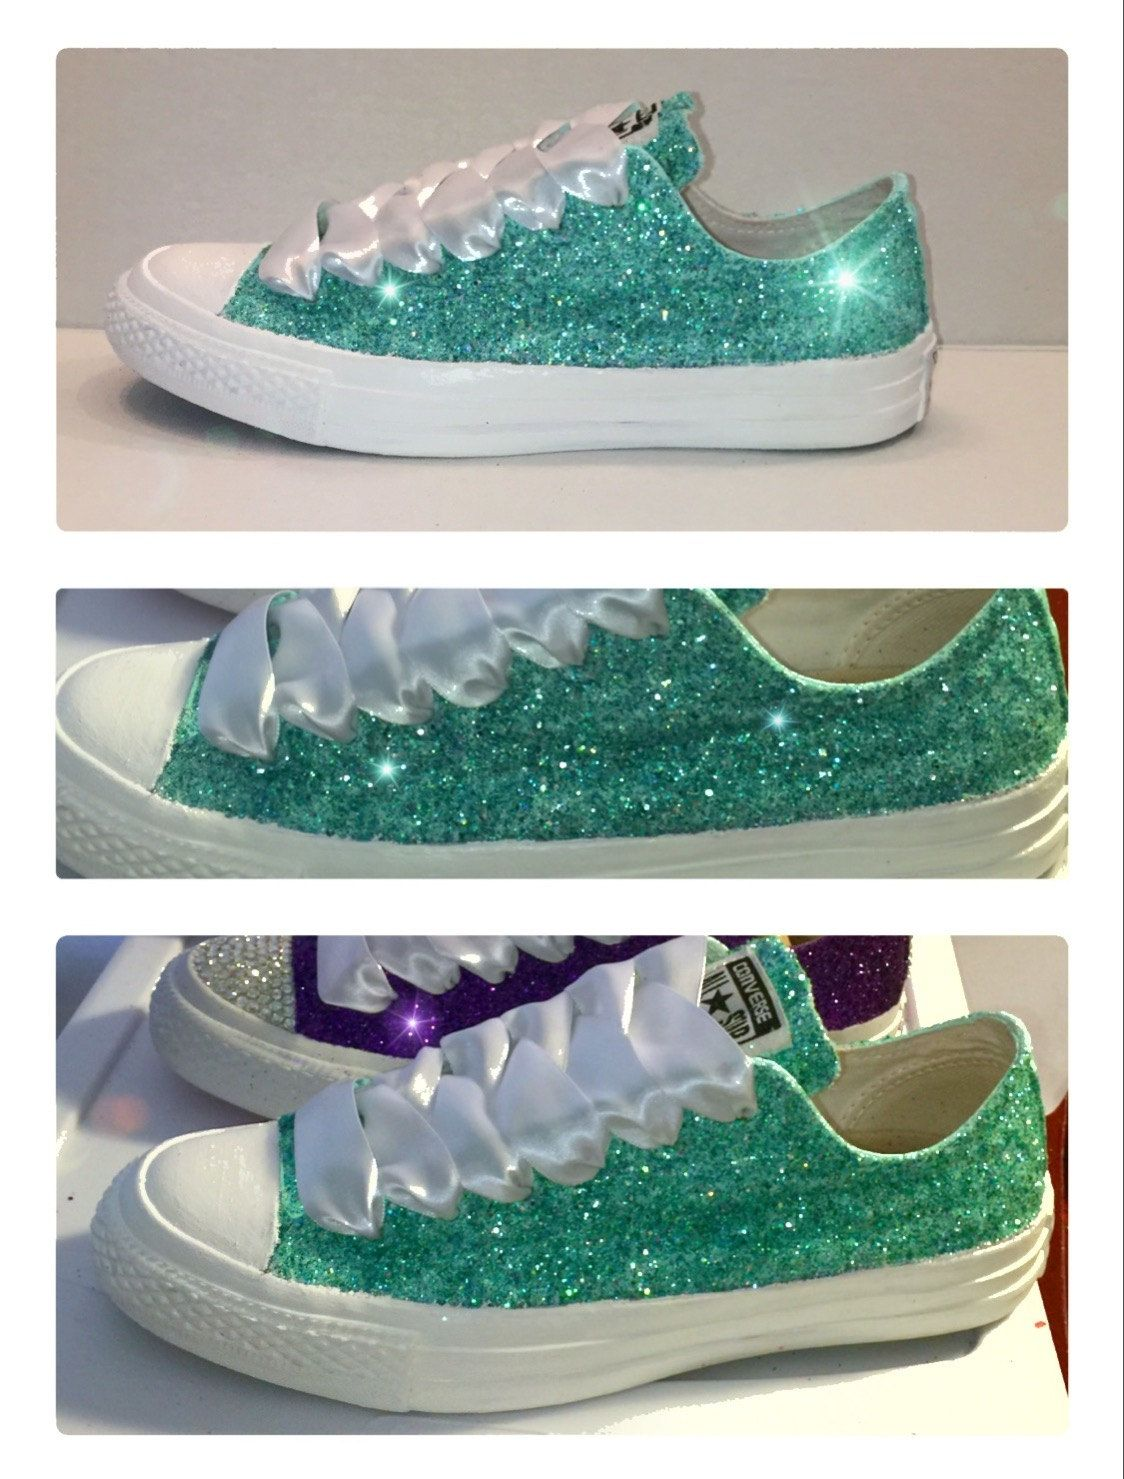 Women s Converse all star shoes handmade Sparkly glitter mint green  spearmint pastel chucks sneakers tennis wedding bride prom dance by  CrystalCleatss on ... 342c76d0d